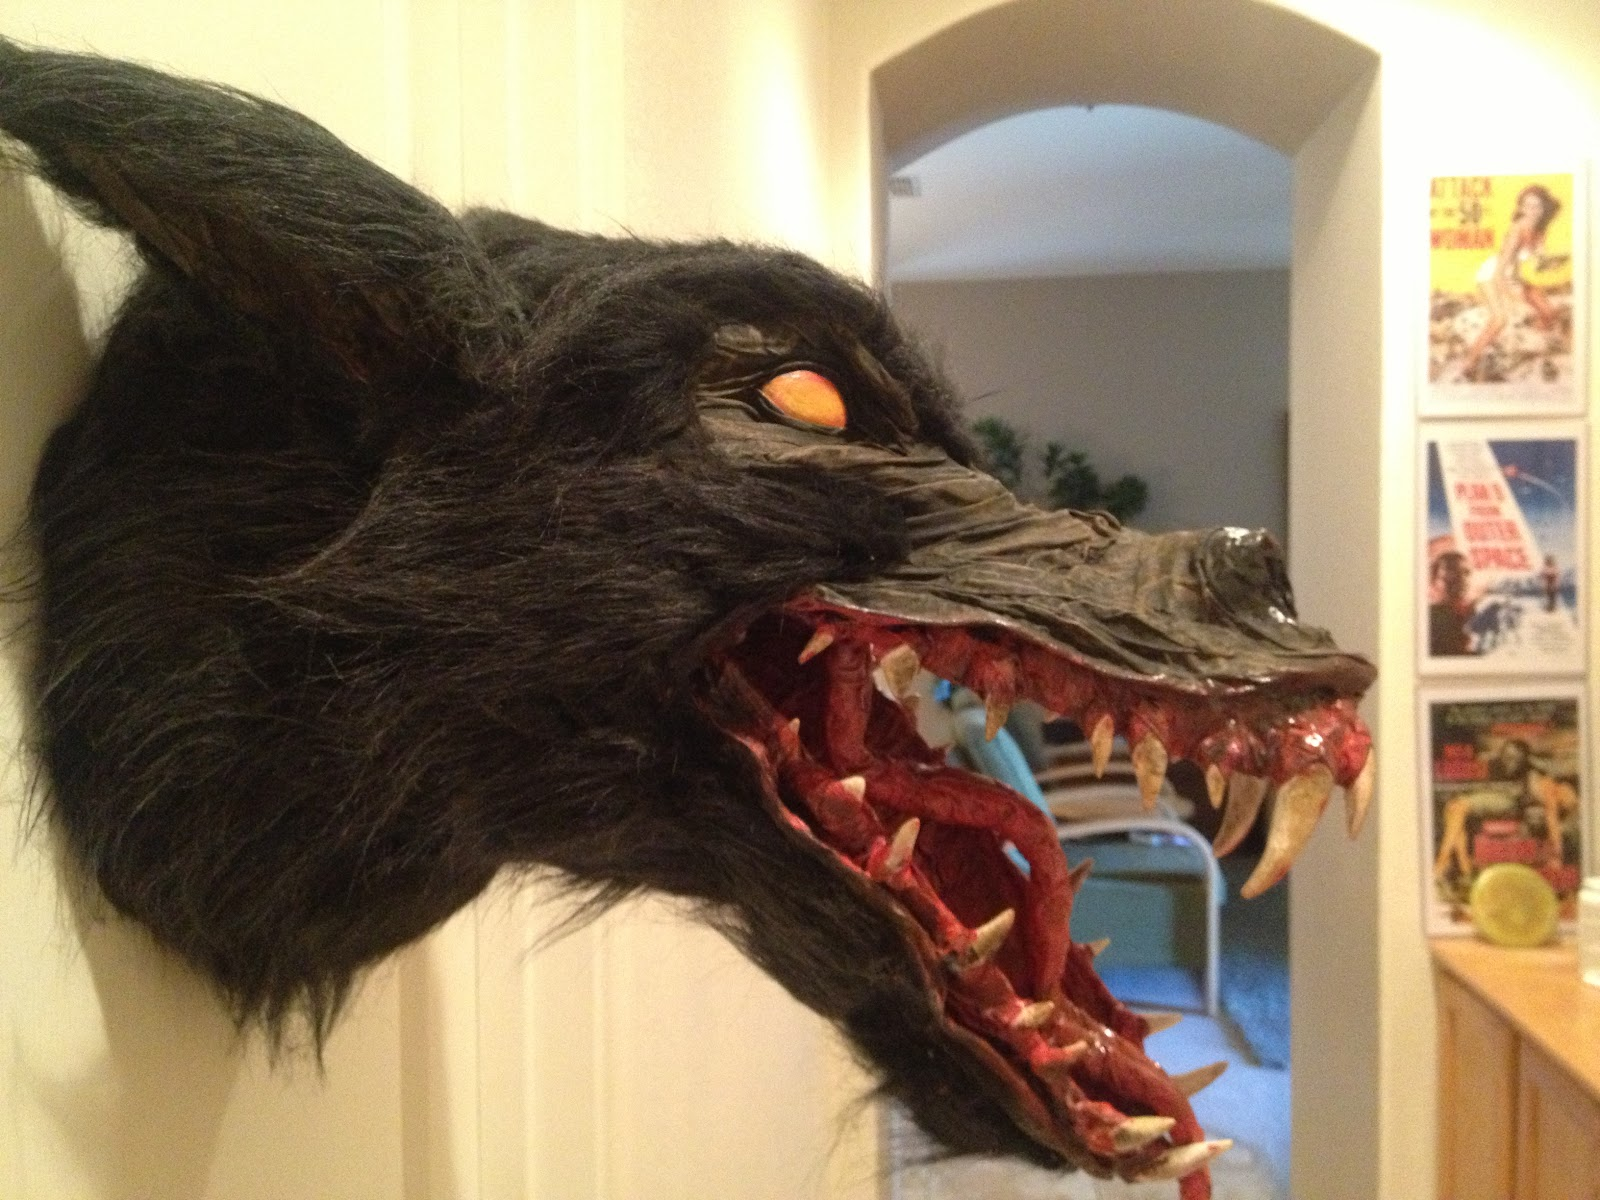 & 102 Wicked Things To Do: #33 The Big Bad Wolf